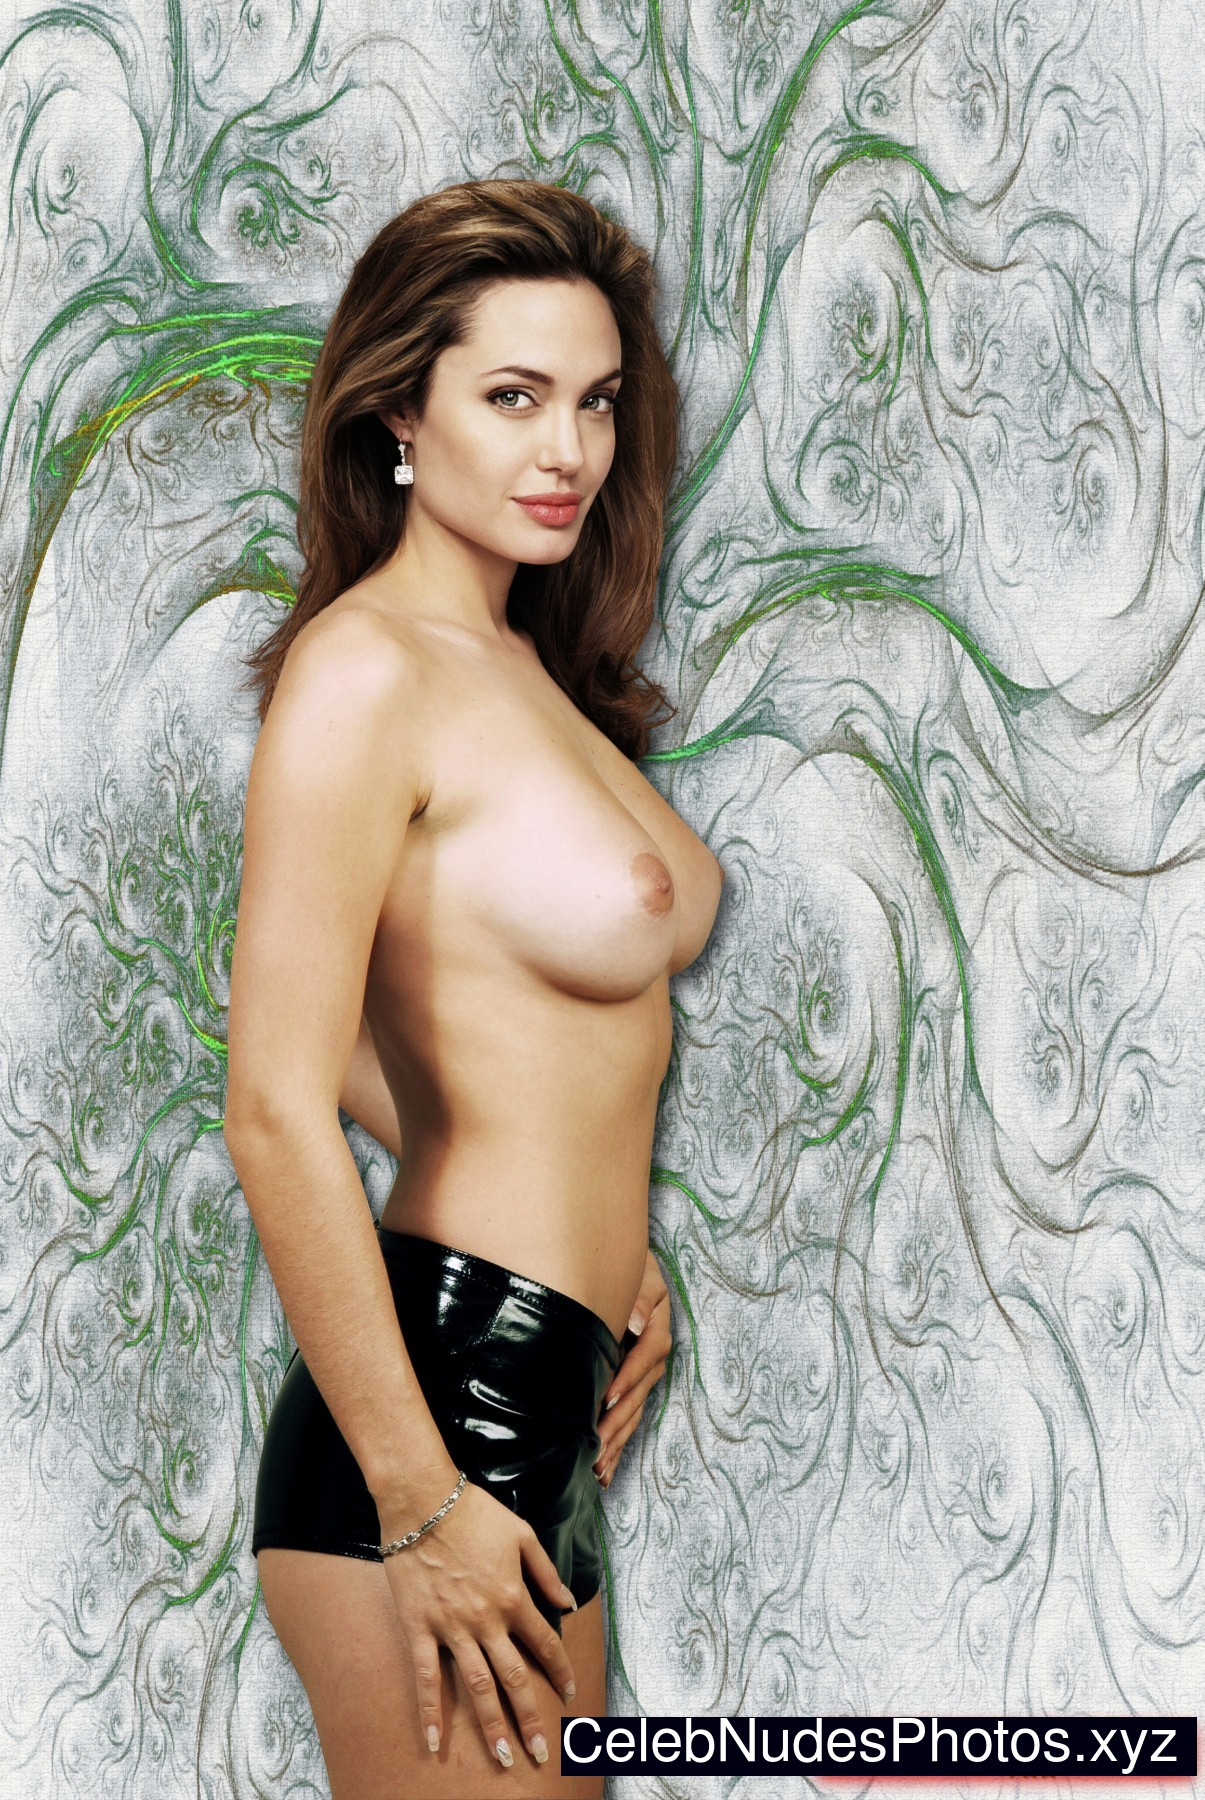 Angelina Jolie Nude Pictures angelina jolie naked (42 photos) - #thefappening